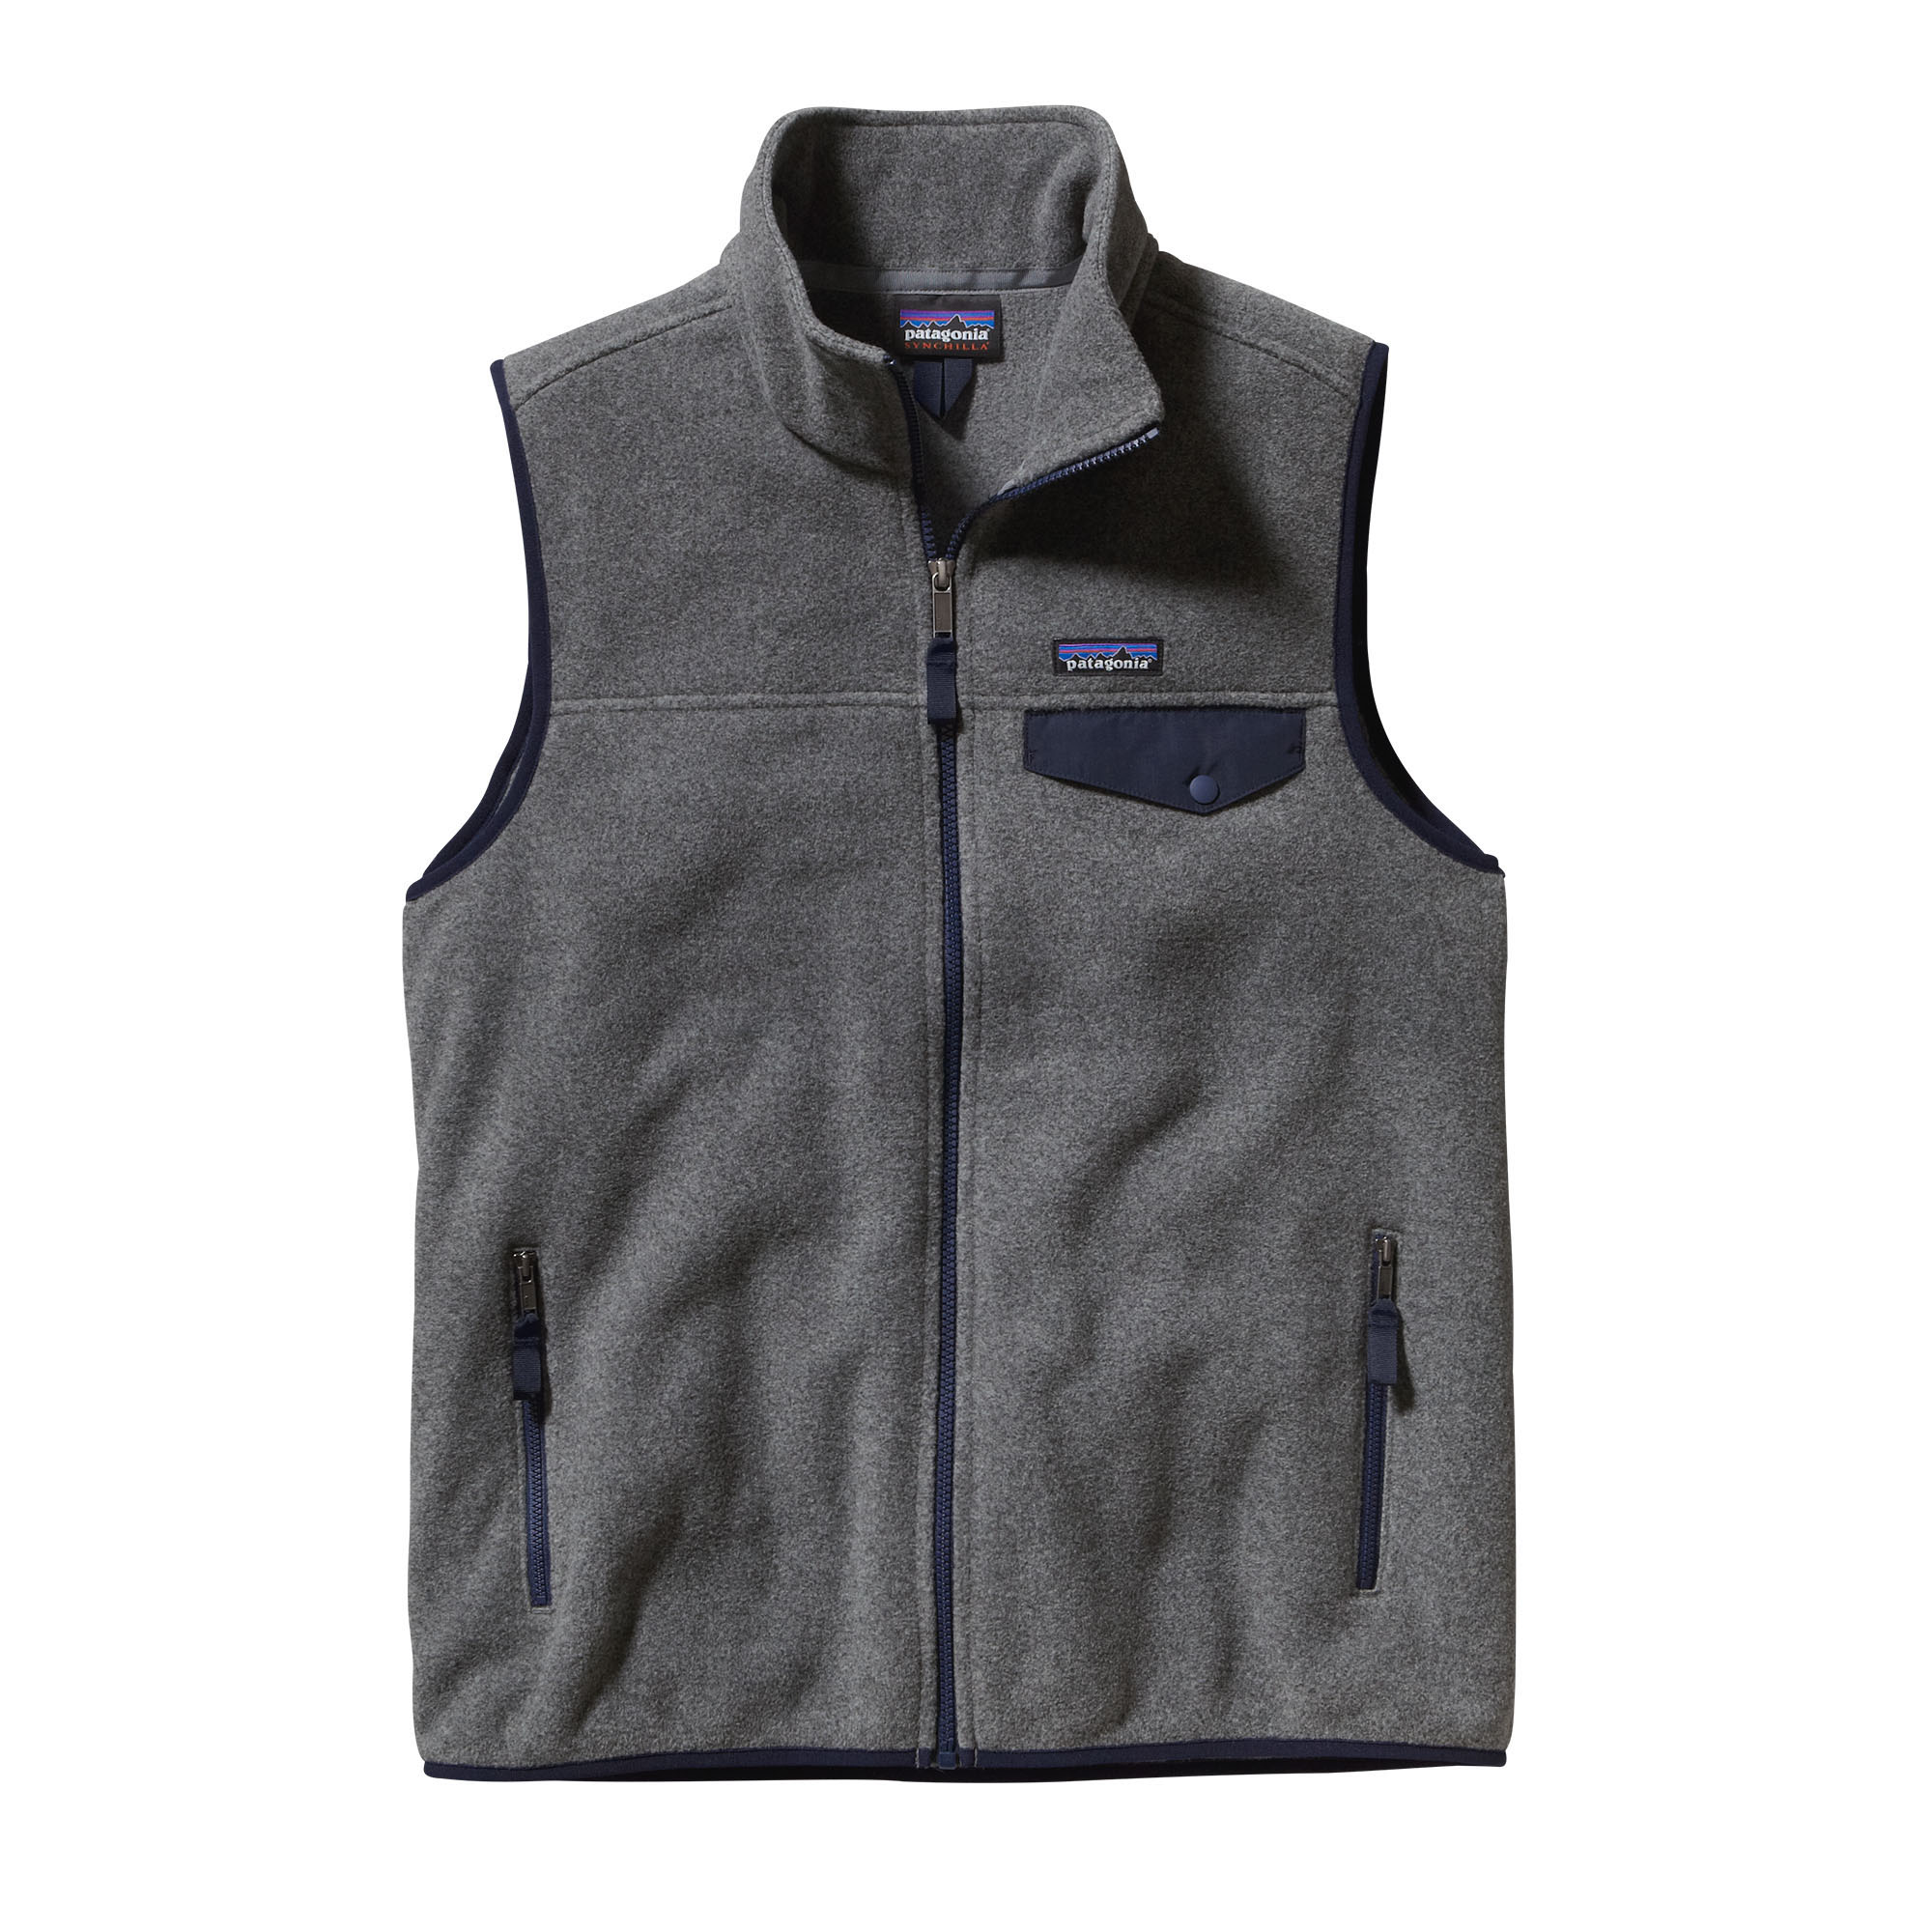 PATAGONIA MEN'S LW SYNCH SNAP-T VEST (25500)